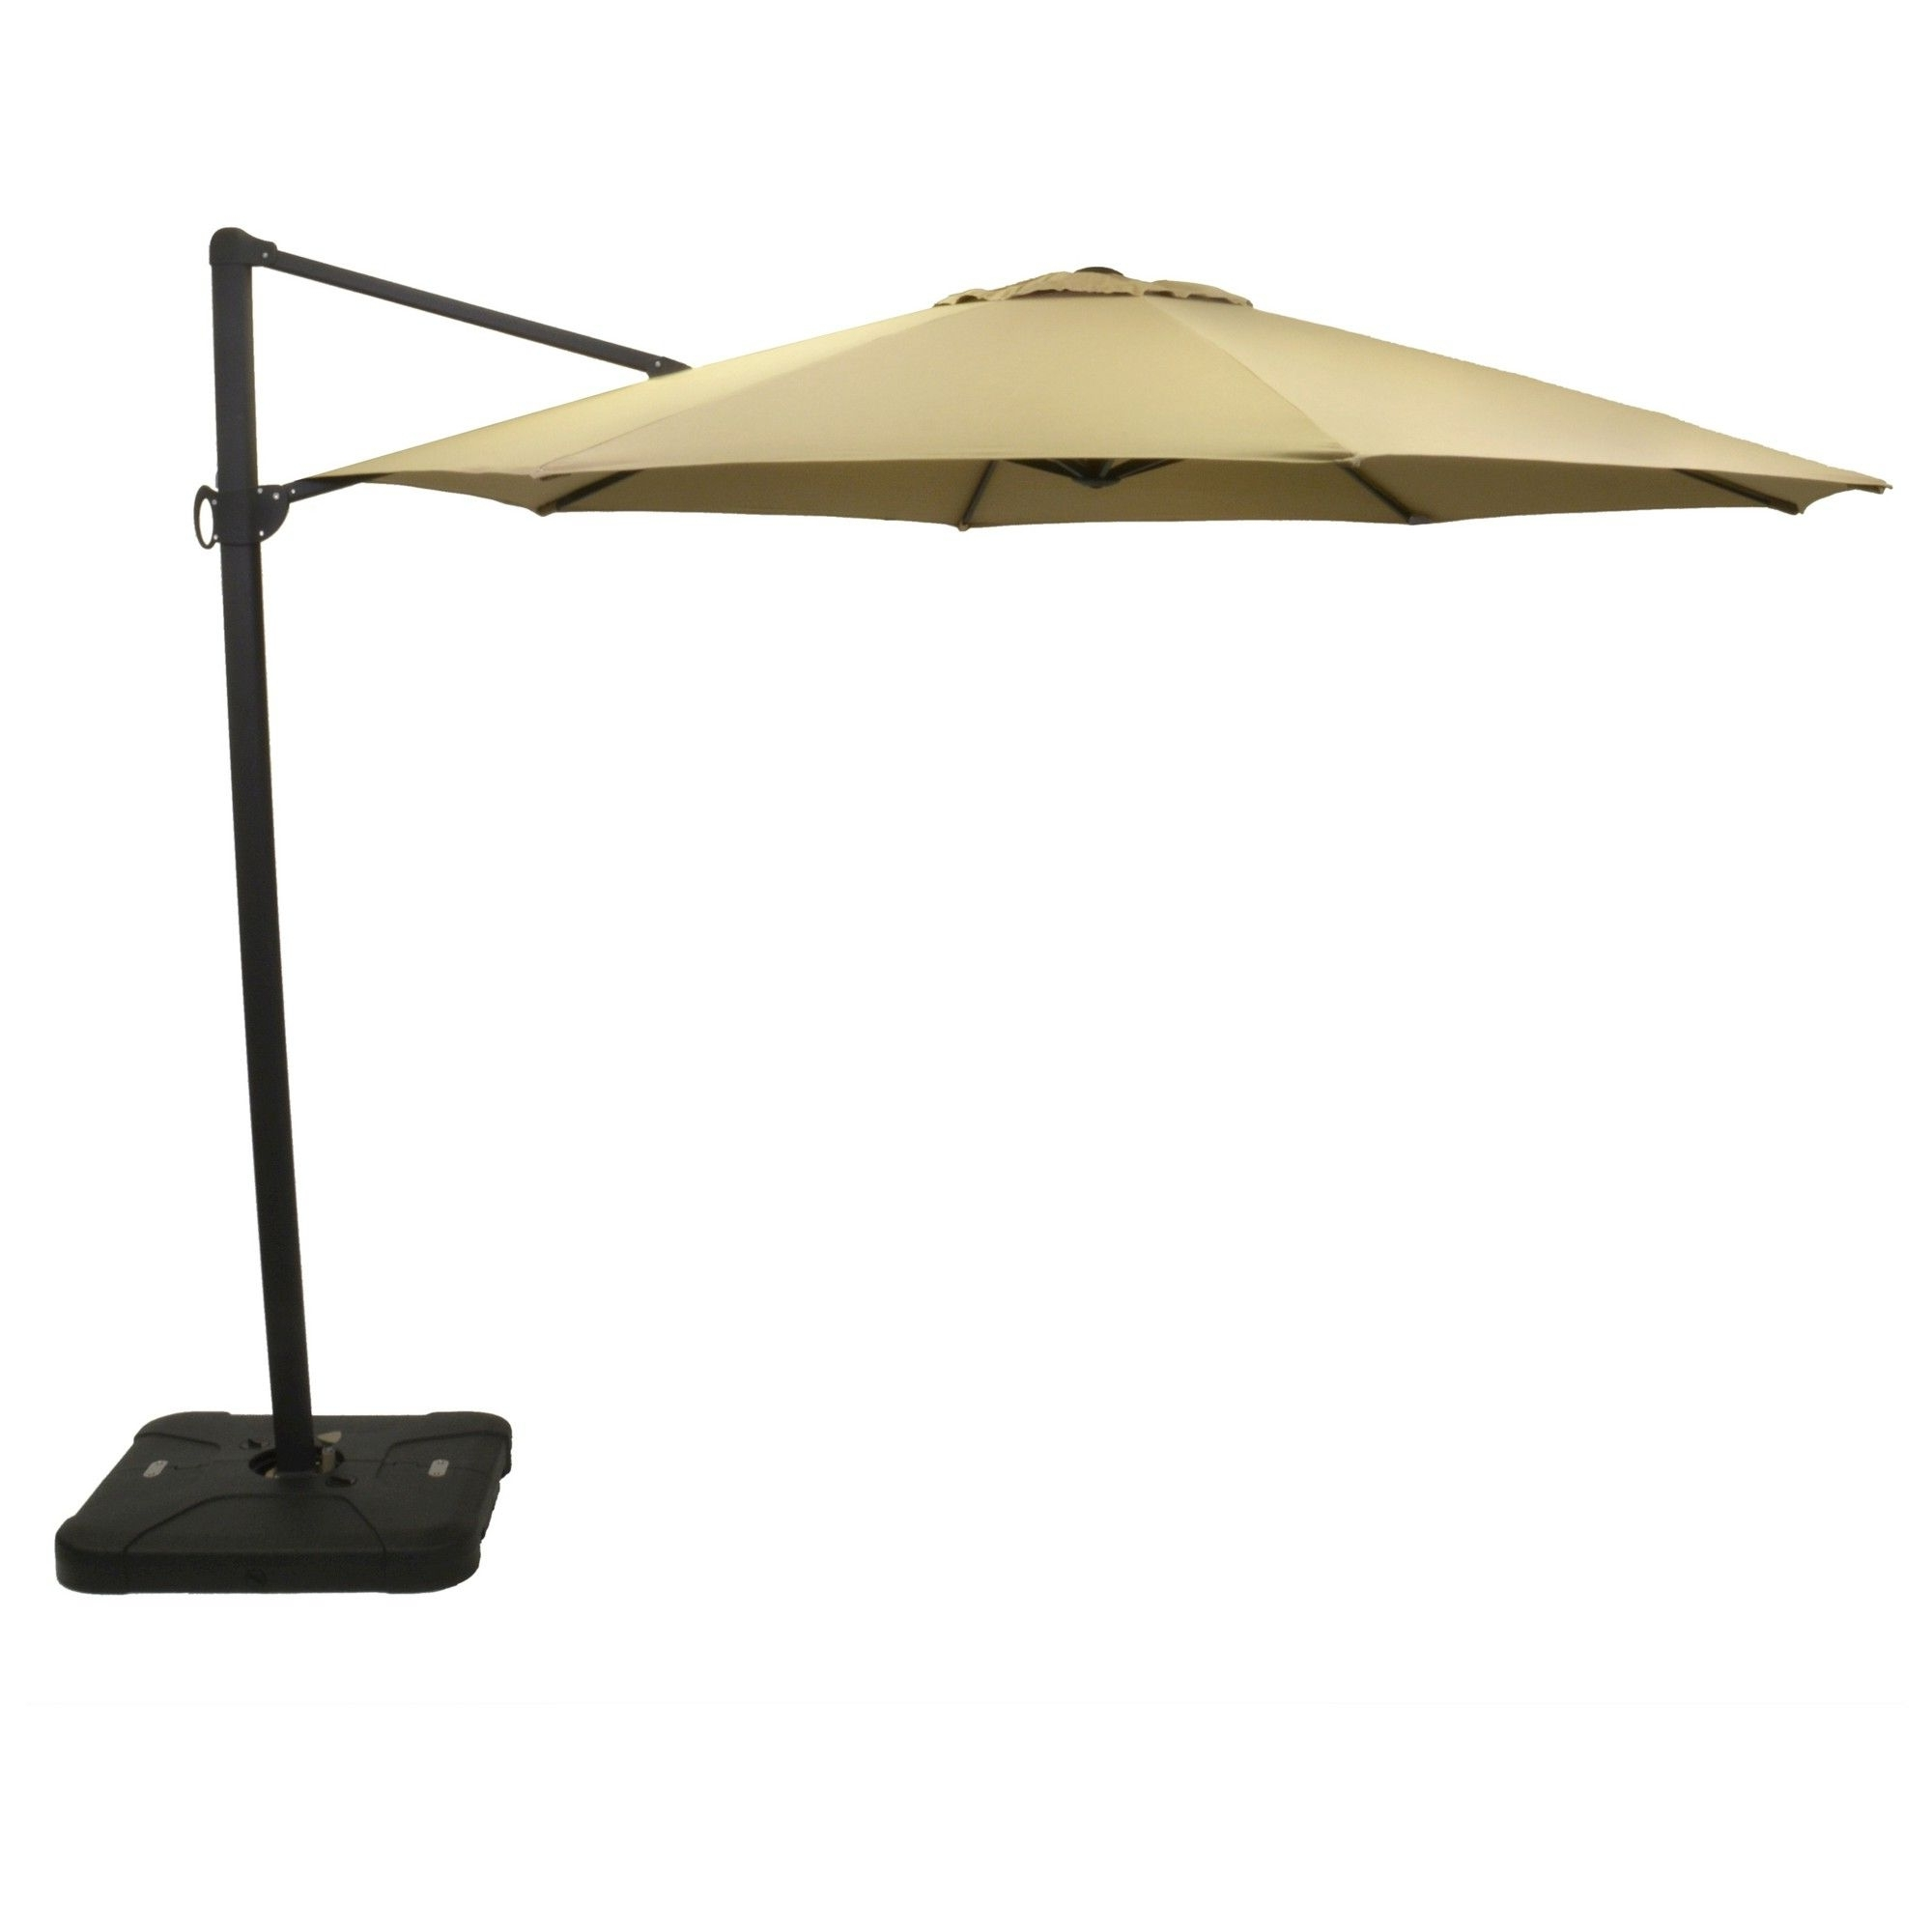 Most Up To Date 11' Offset Sunbrella Umbrella – Canvas Heather Beige – Black Pole Inside Sunbrella Patio Umbrella With Lights (View 11 of 20)